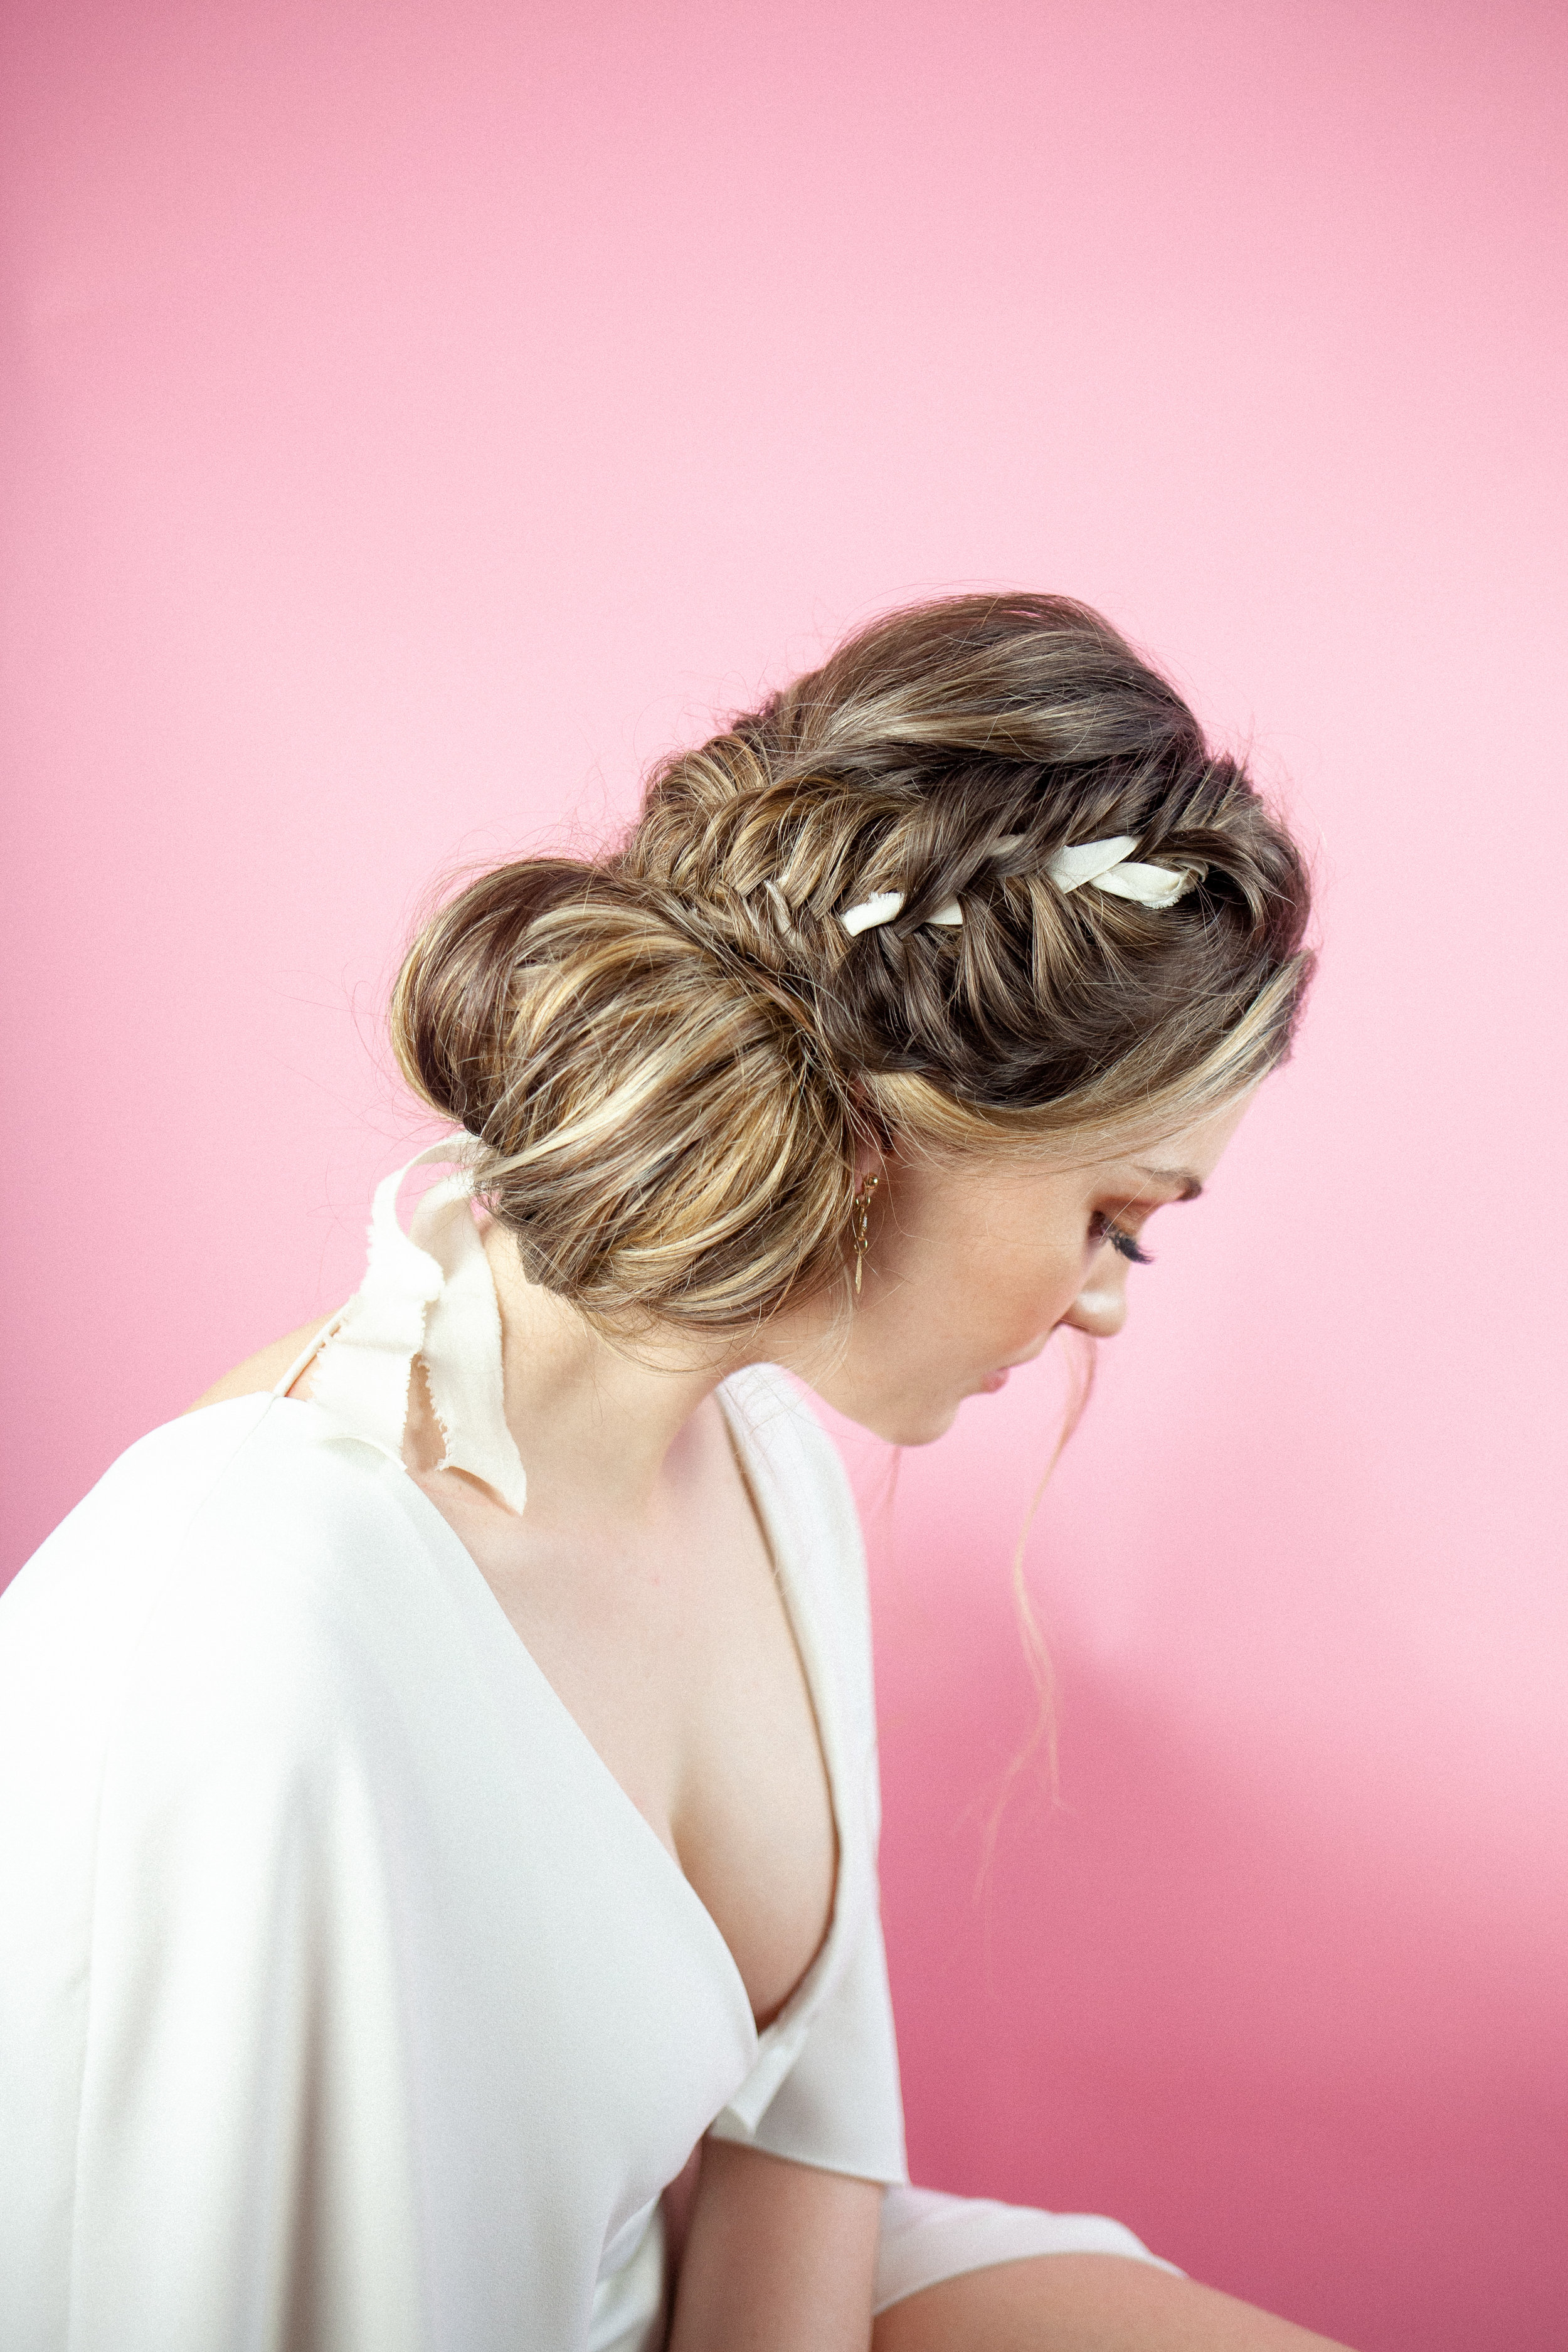 romantic hair(4)4.jpg